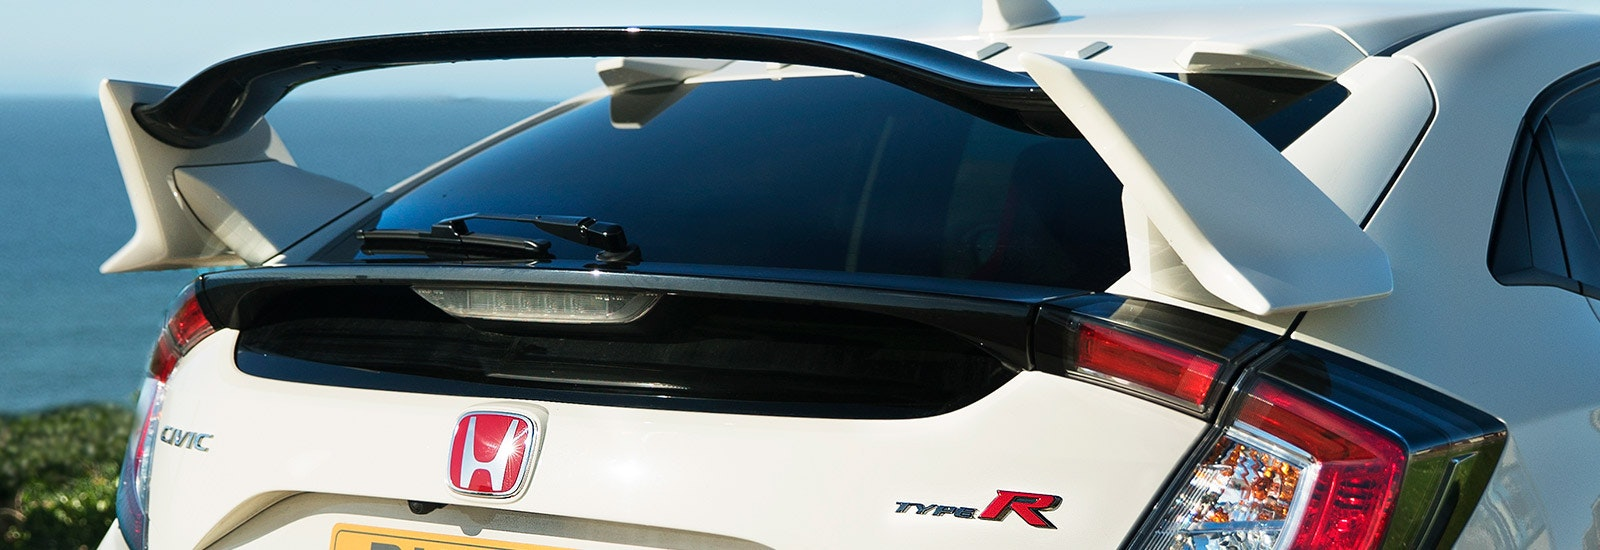 Championship White Honda Civic Type R rear spoiler closeup, viewed from behind